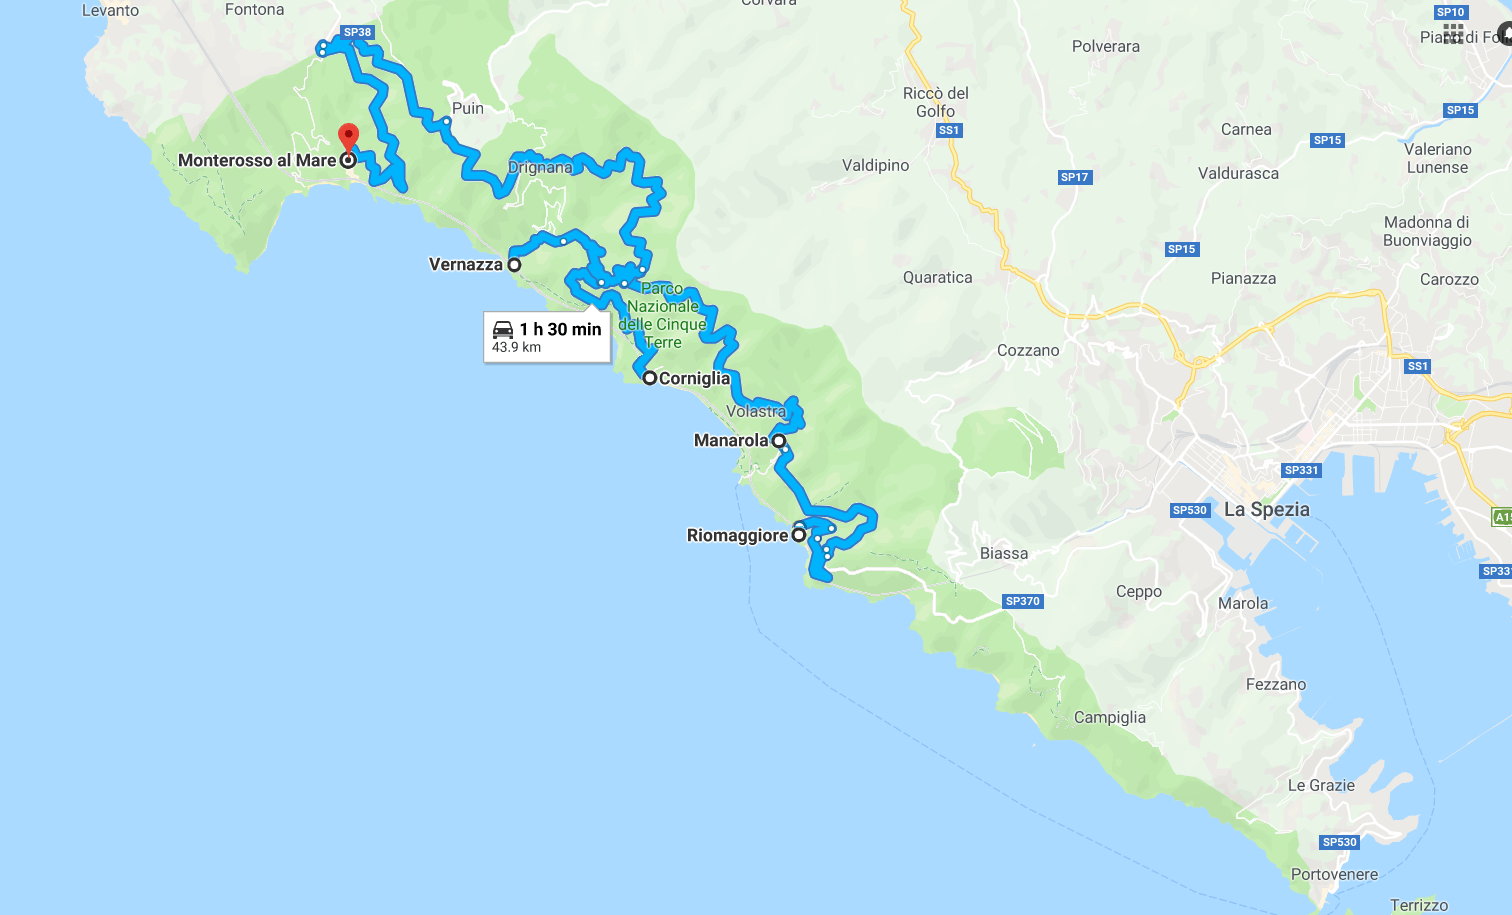 Map Of Italy With Towns.Riomaggiore Sp Italy To Monterosso Al Mare Sp Italy Google Maps 2